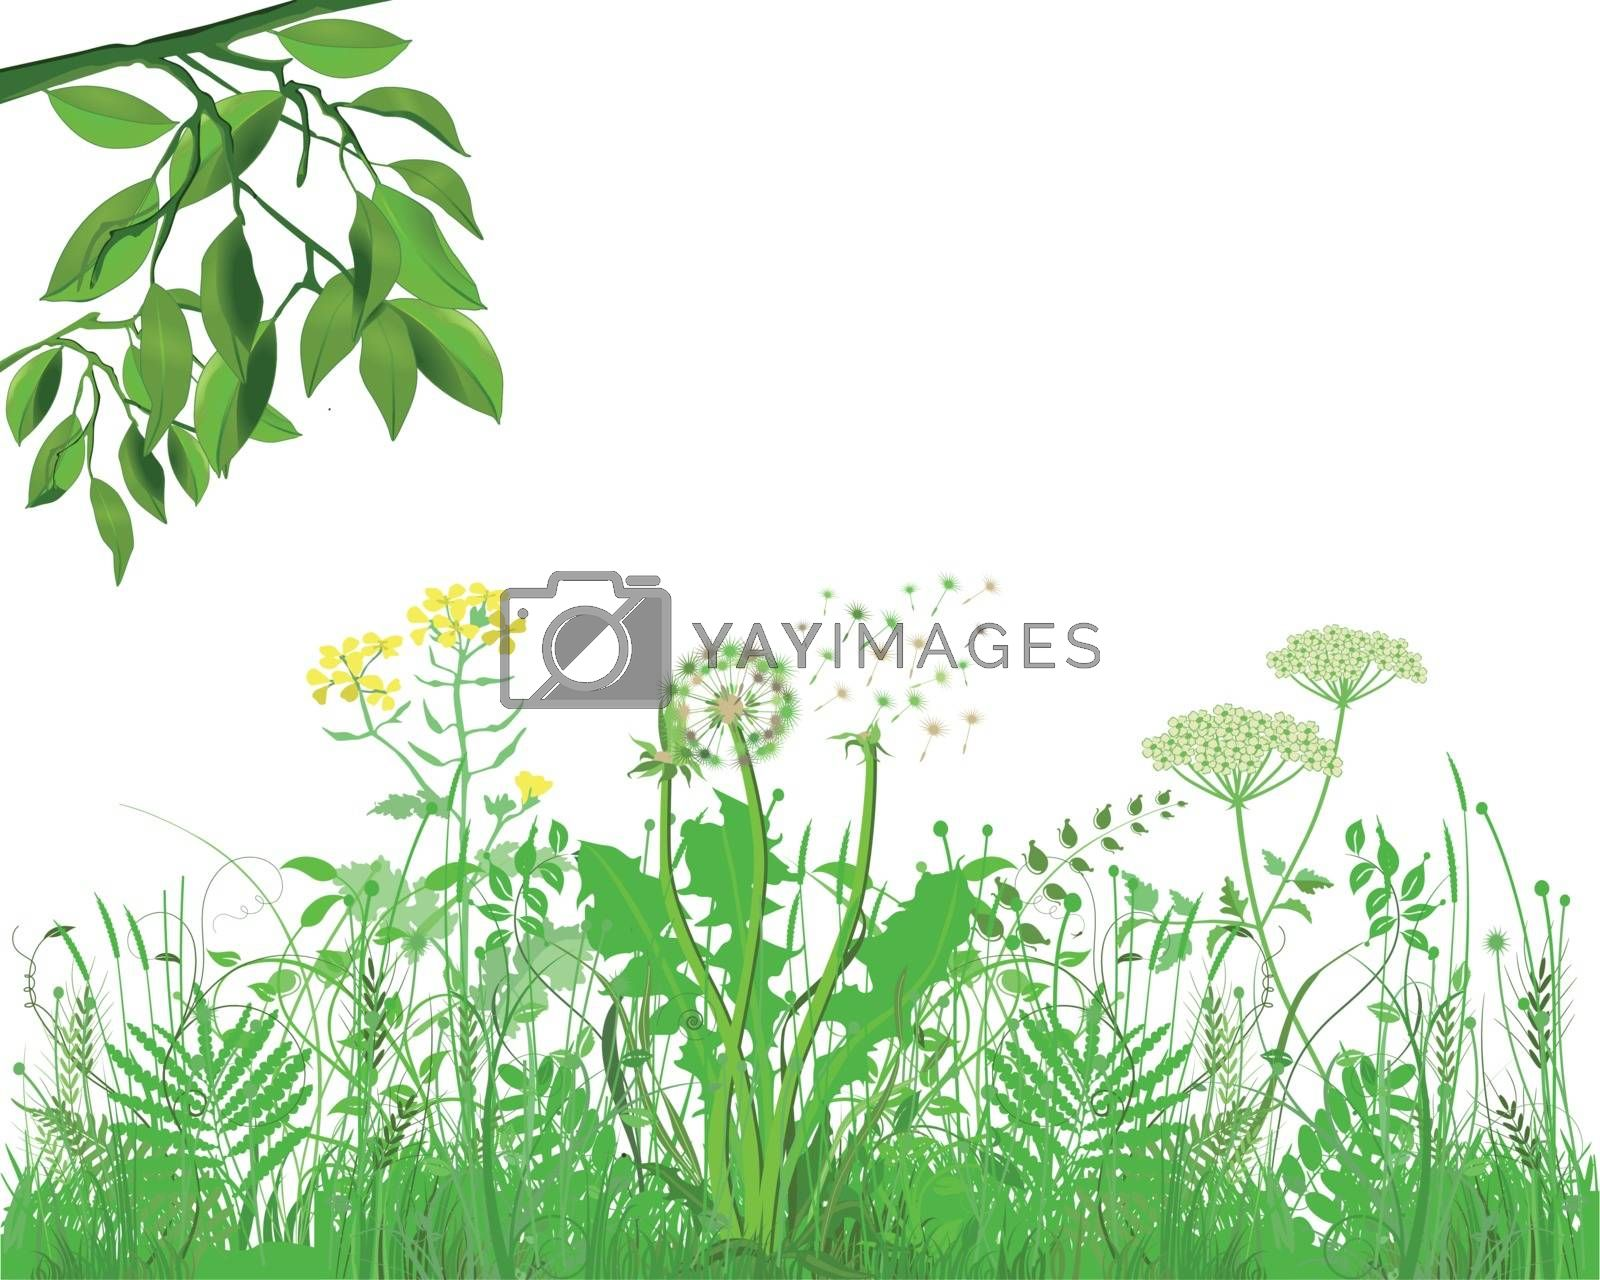 Grasses with herbs and flowers, Illustration